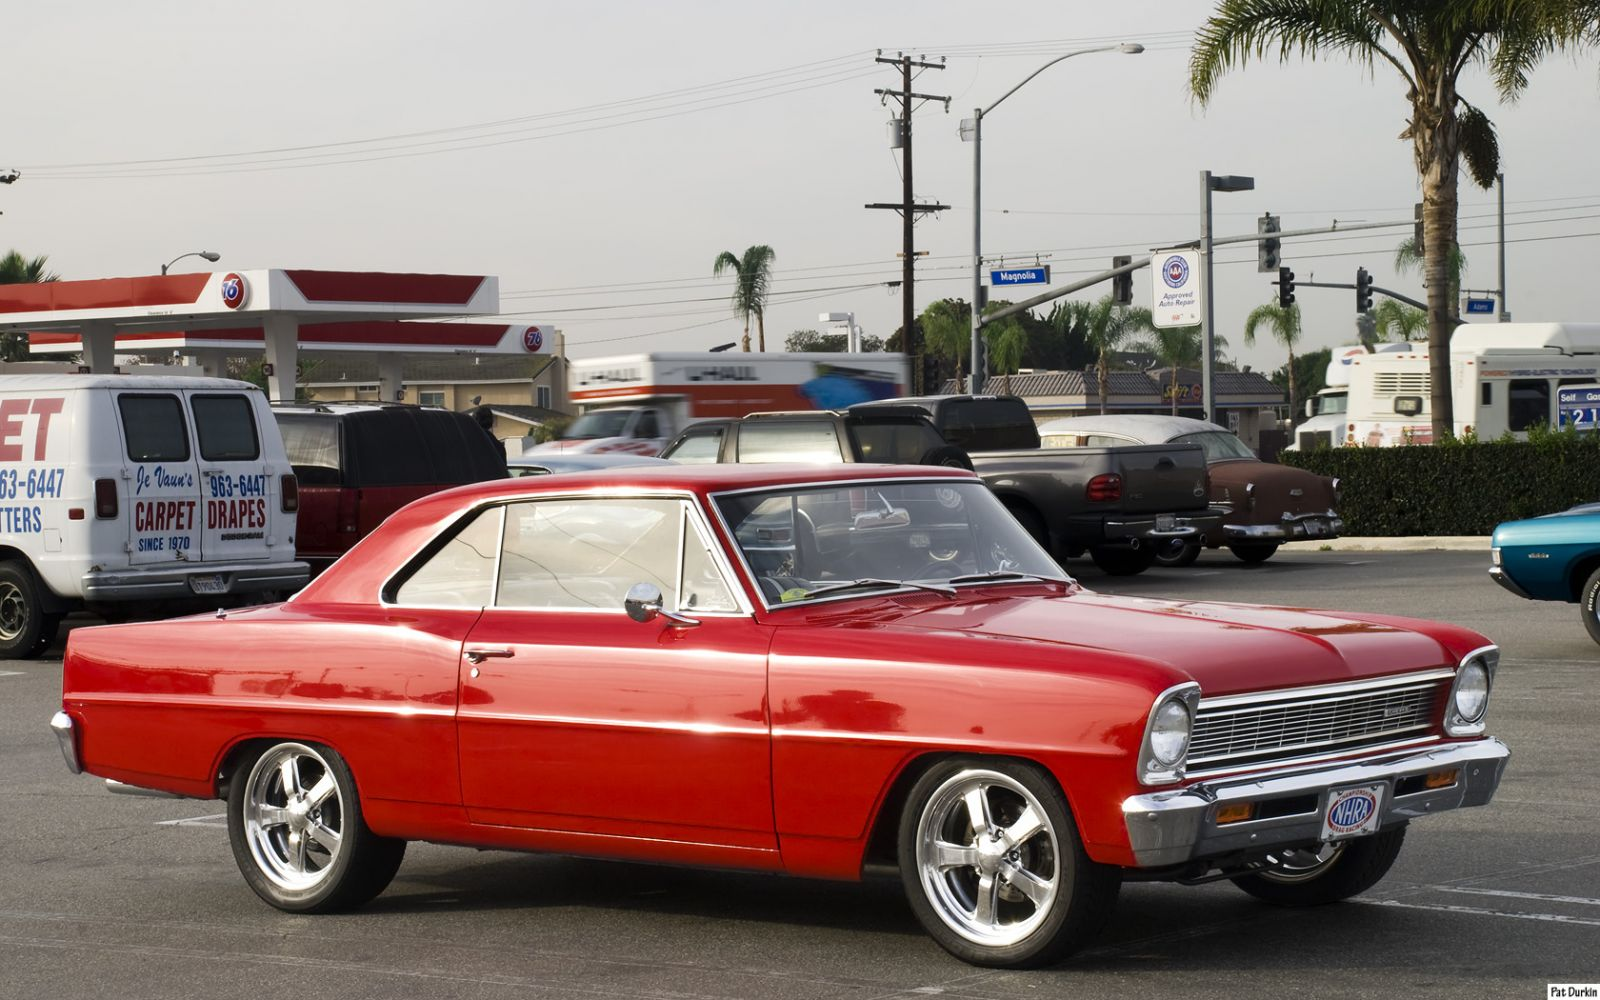 All Chevy chevy 2 : 1966 Chevrolet Chevy II Nova - red - fvr 2 - General Motors ...